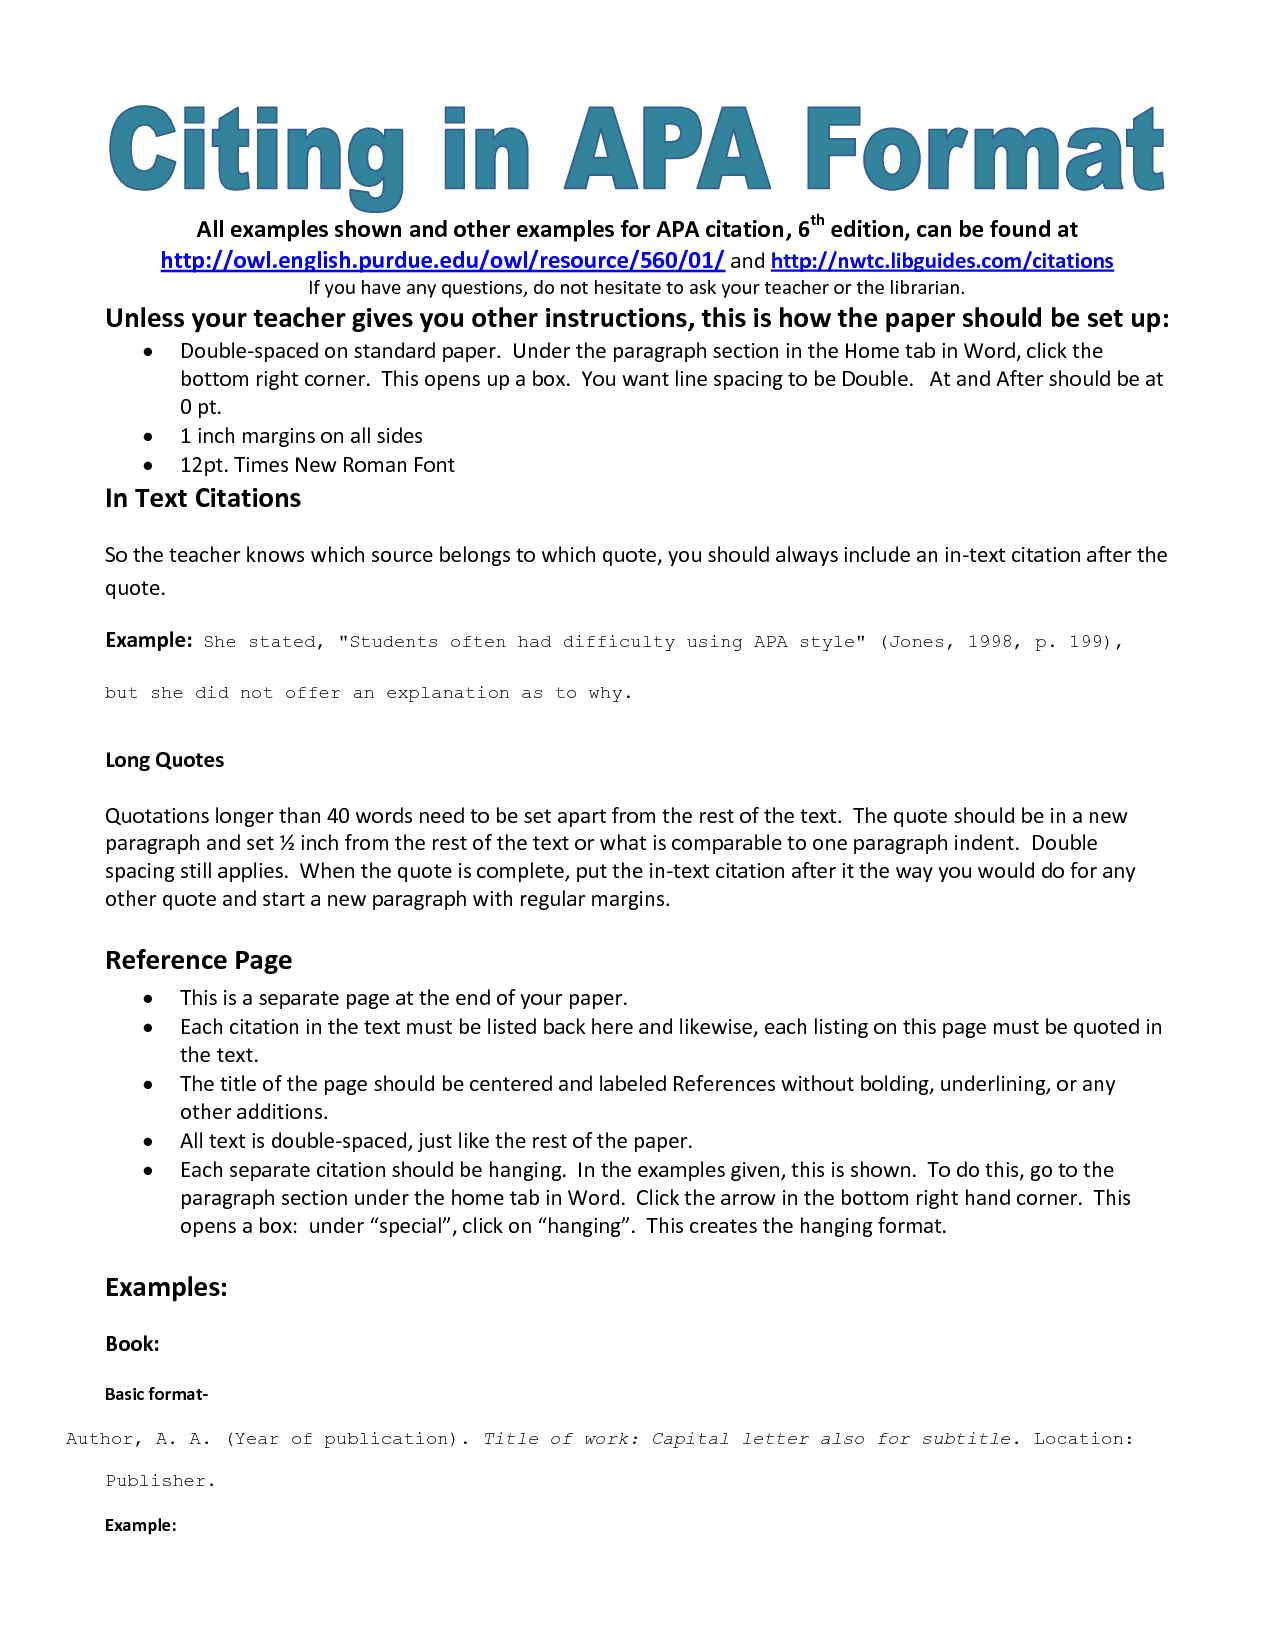 013 Buy Essay Papers Example 2778649422 Magnificent Full